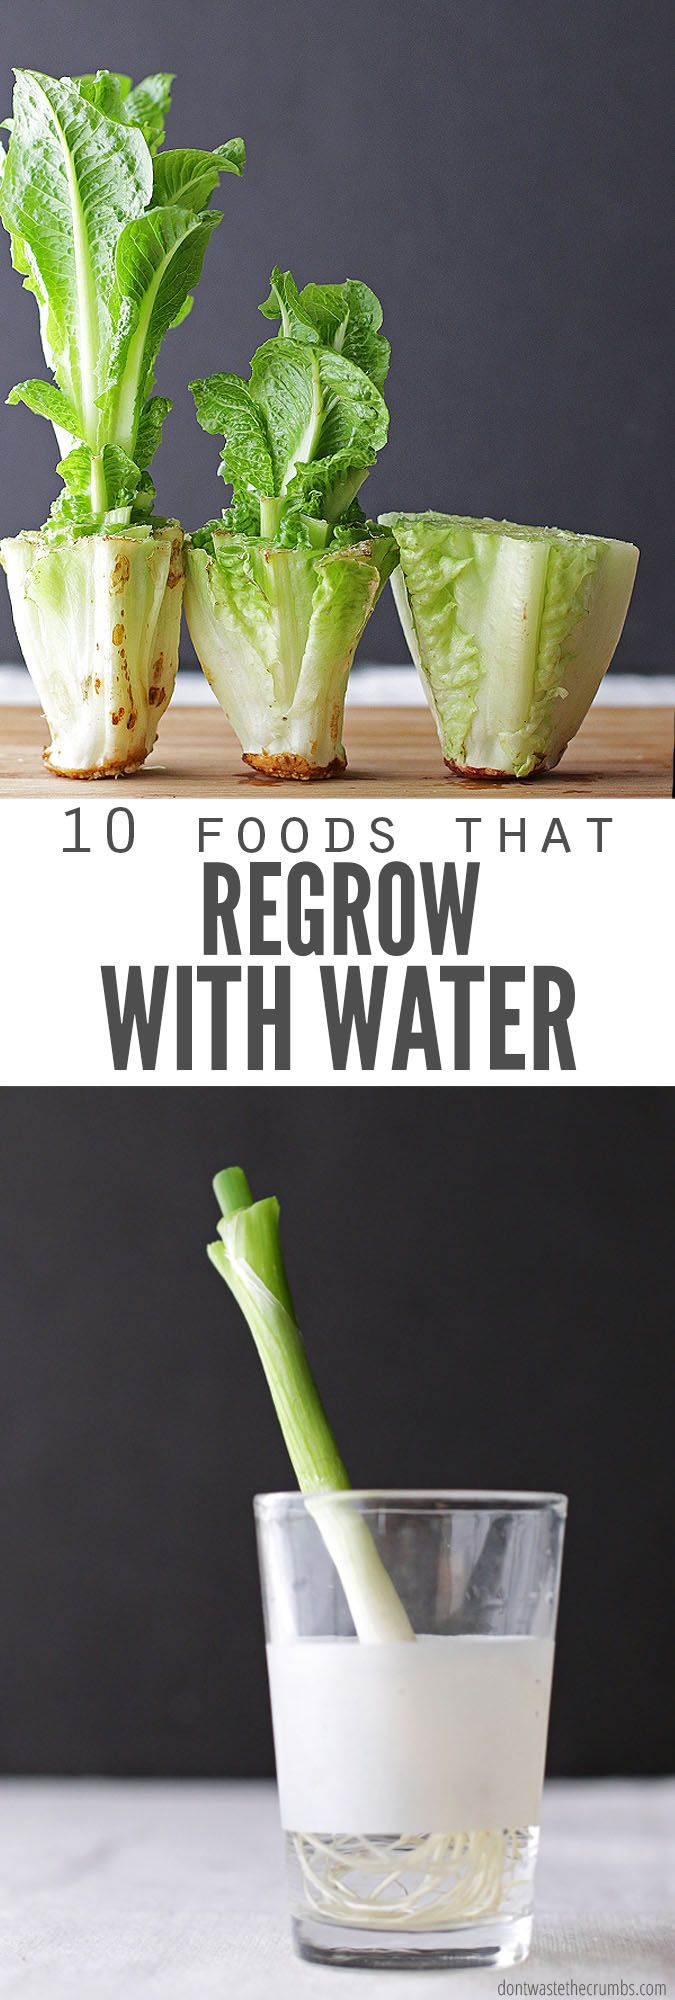 Did you know veggies can RE-grow? YES! Save money and regrow food scraps in wate...